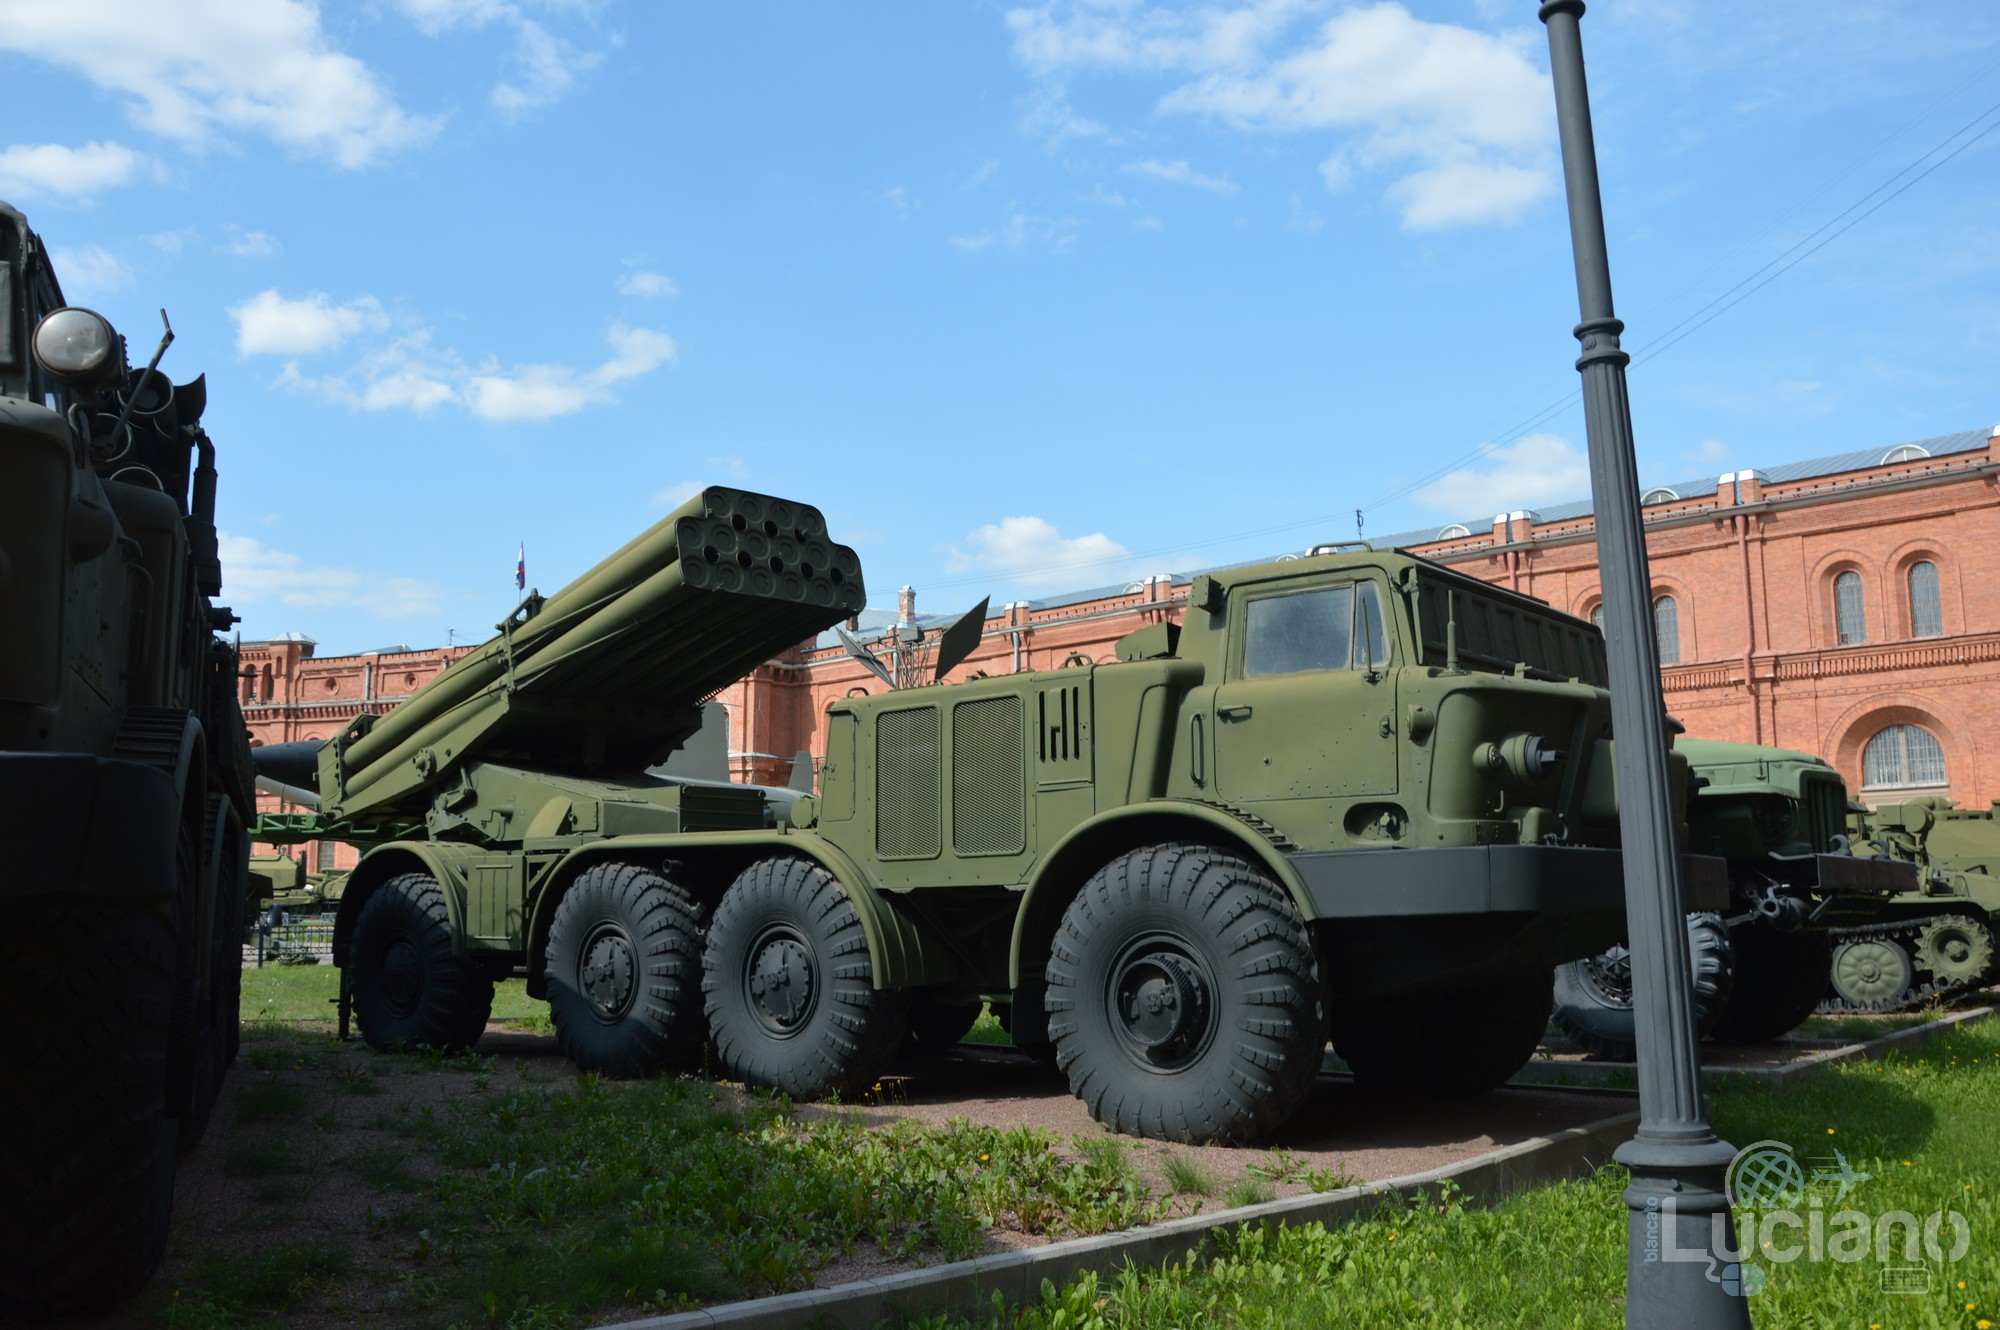 Military-Historical-Museum-of-Artillery-Engineer-and-Signal-Corps-St-Petersburg-Russia-Luciano-Blancato- (29)